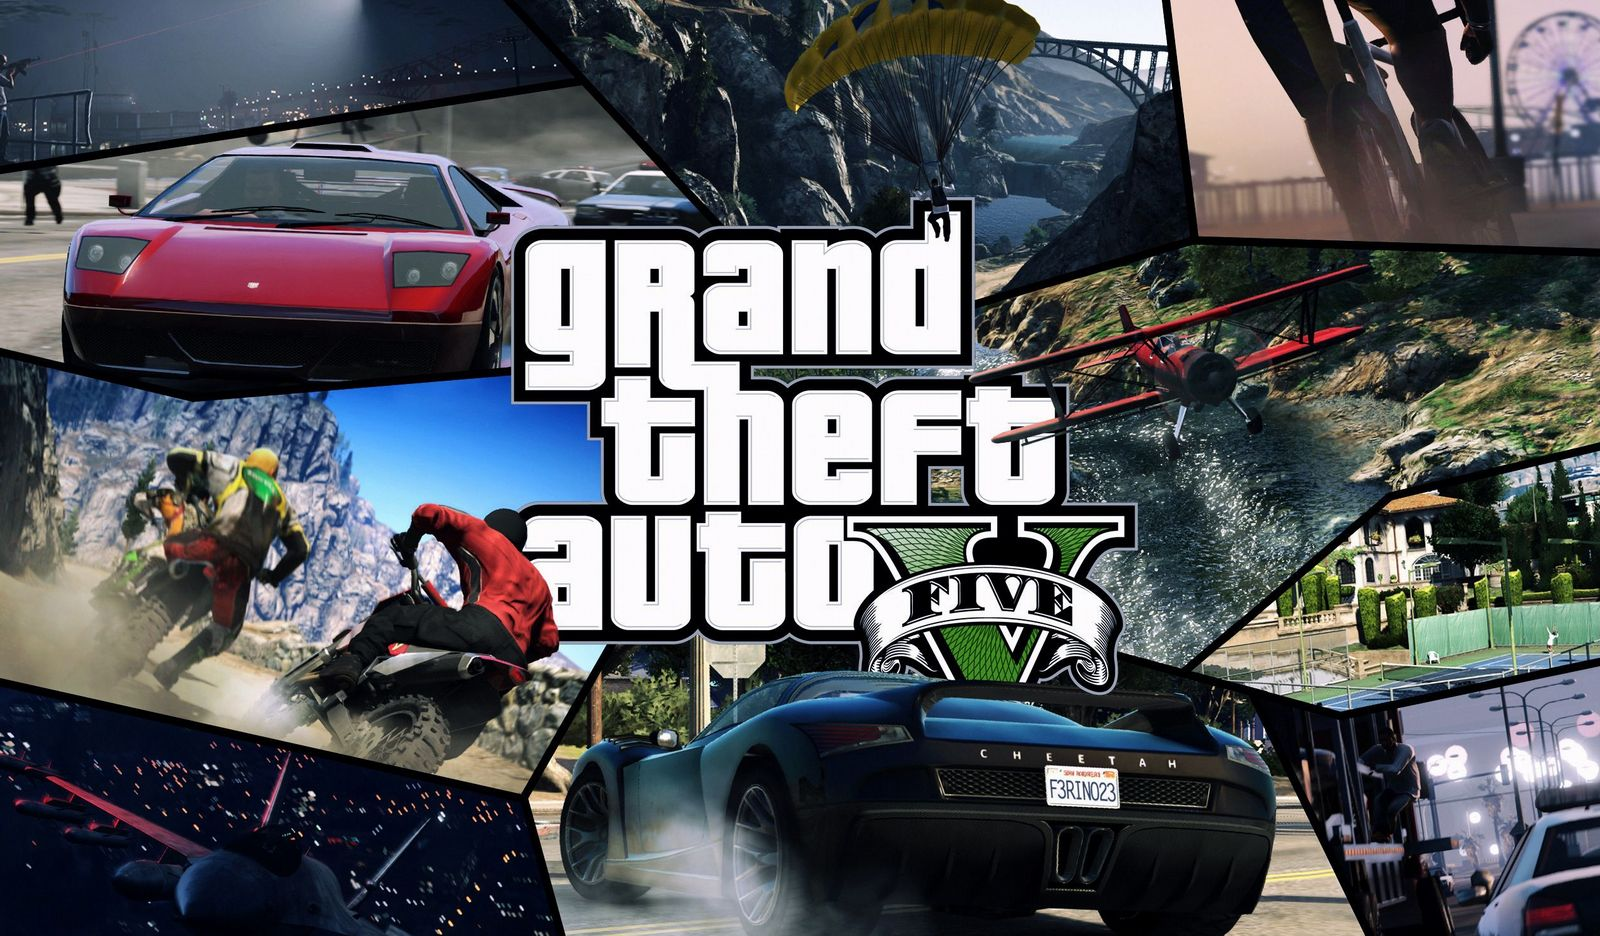 GTA 5 wallpaper cover image